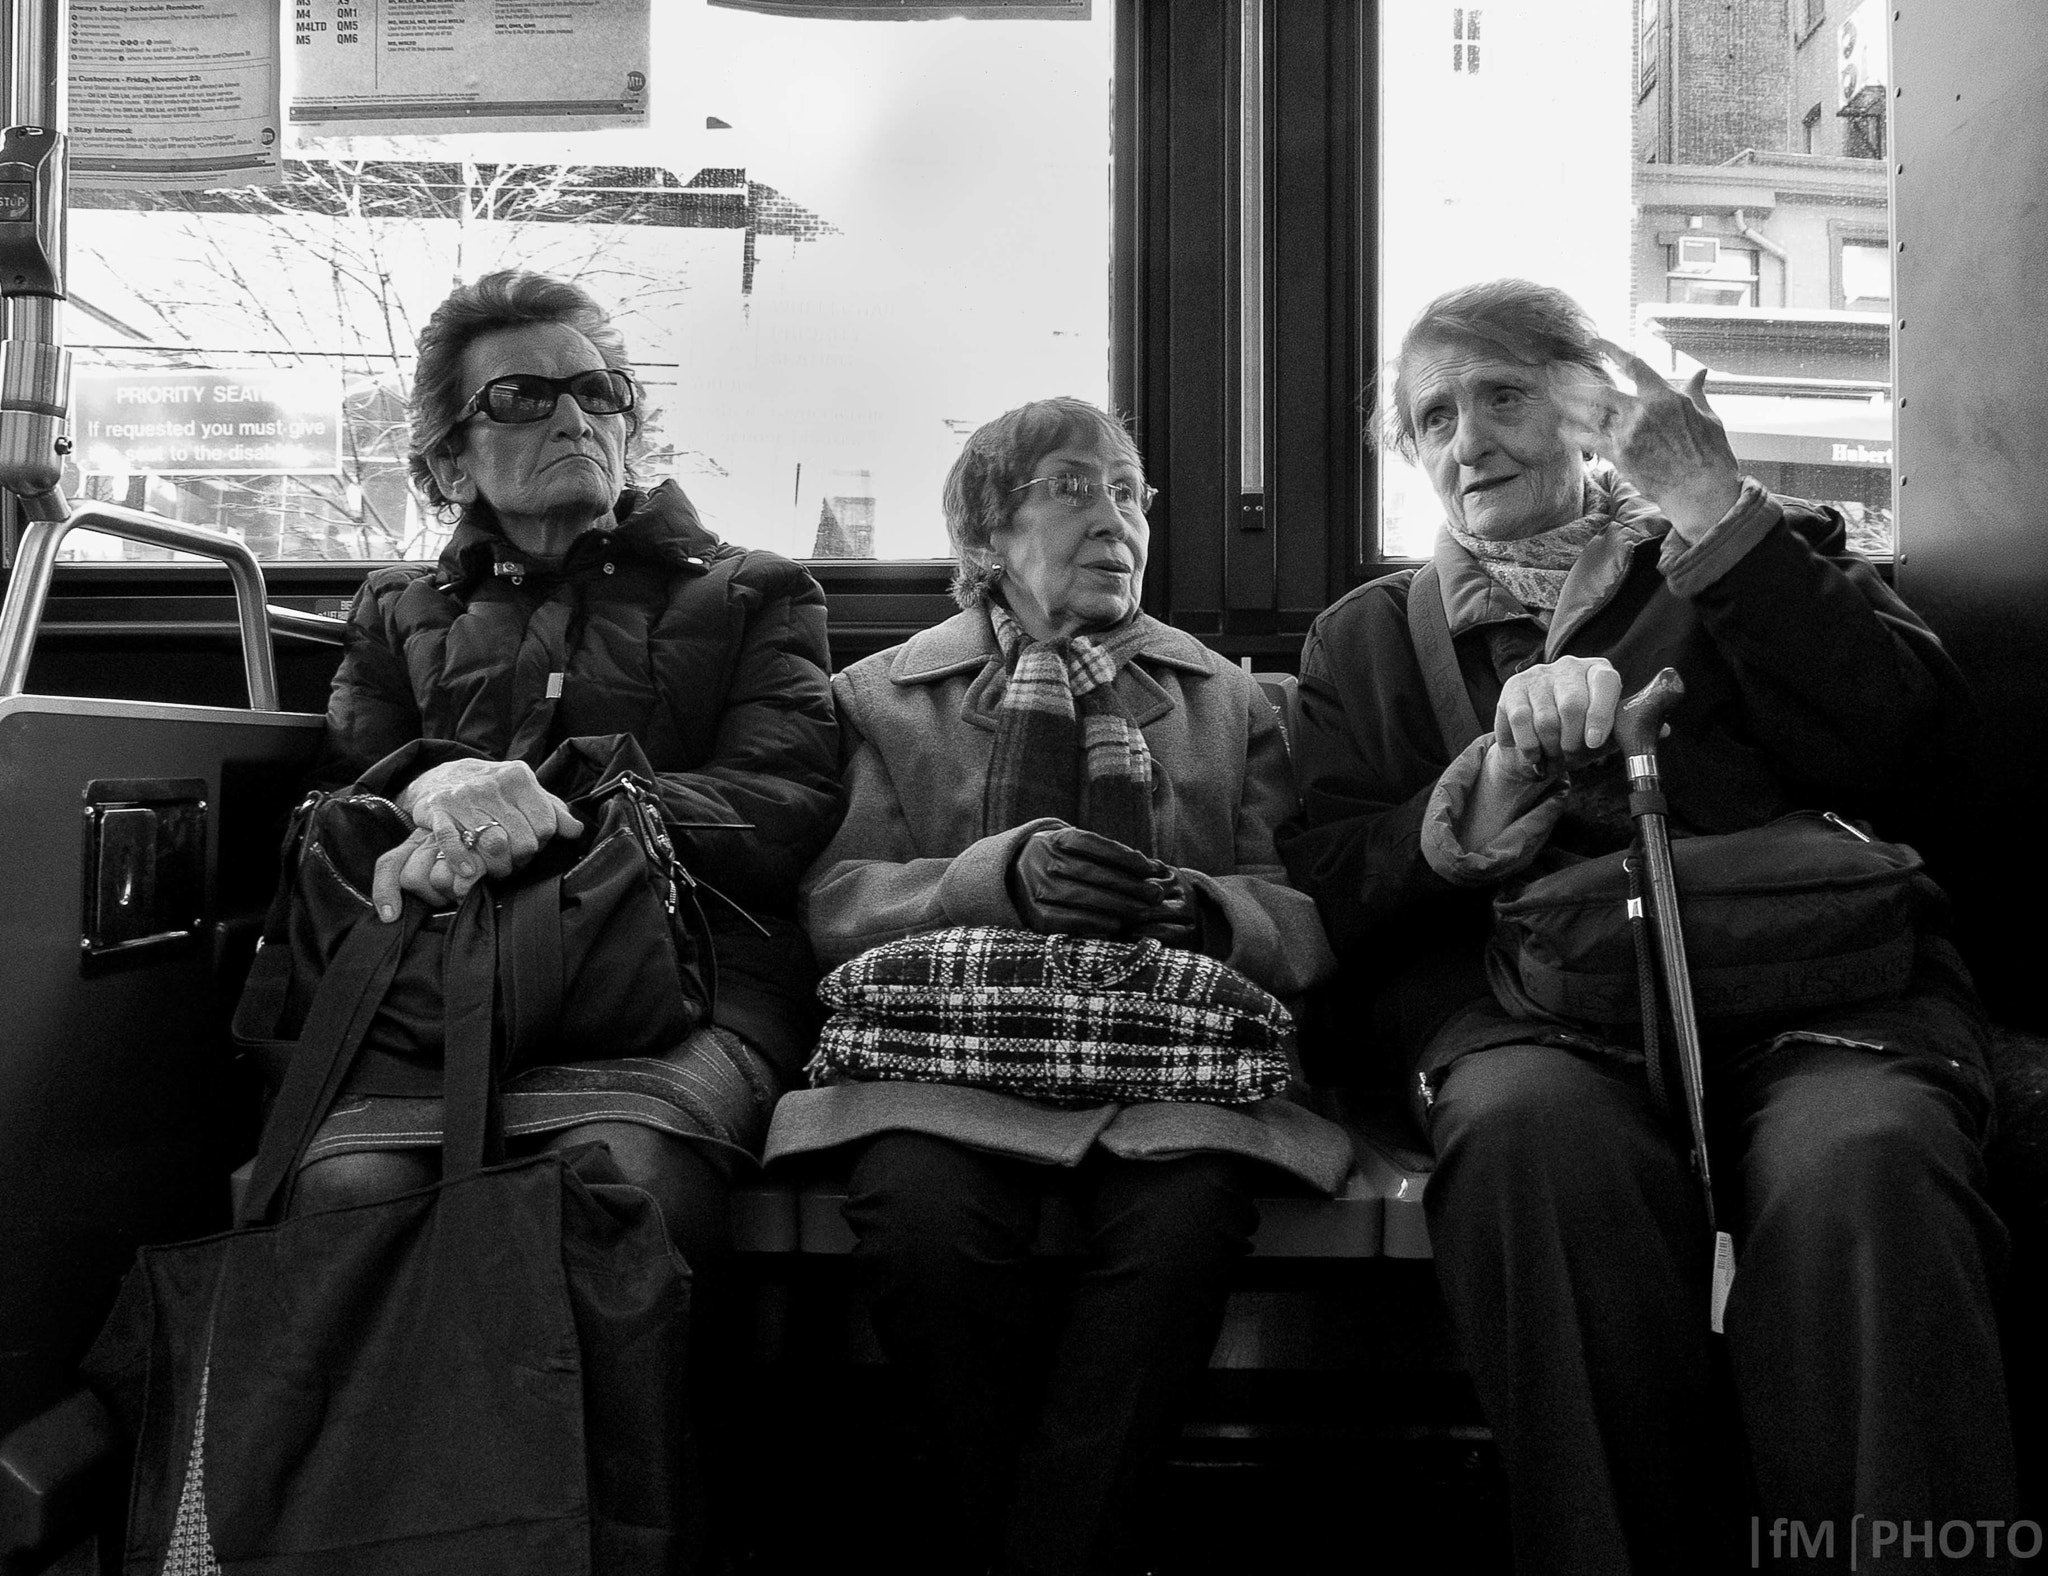 Photograph On the bus by fmstreet on 500px